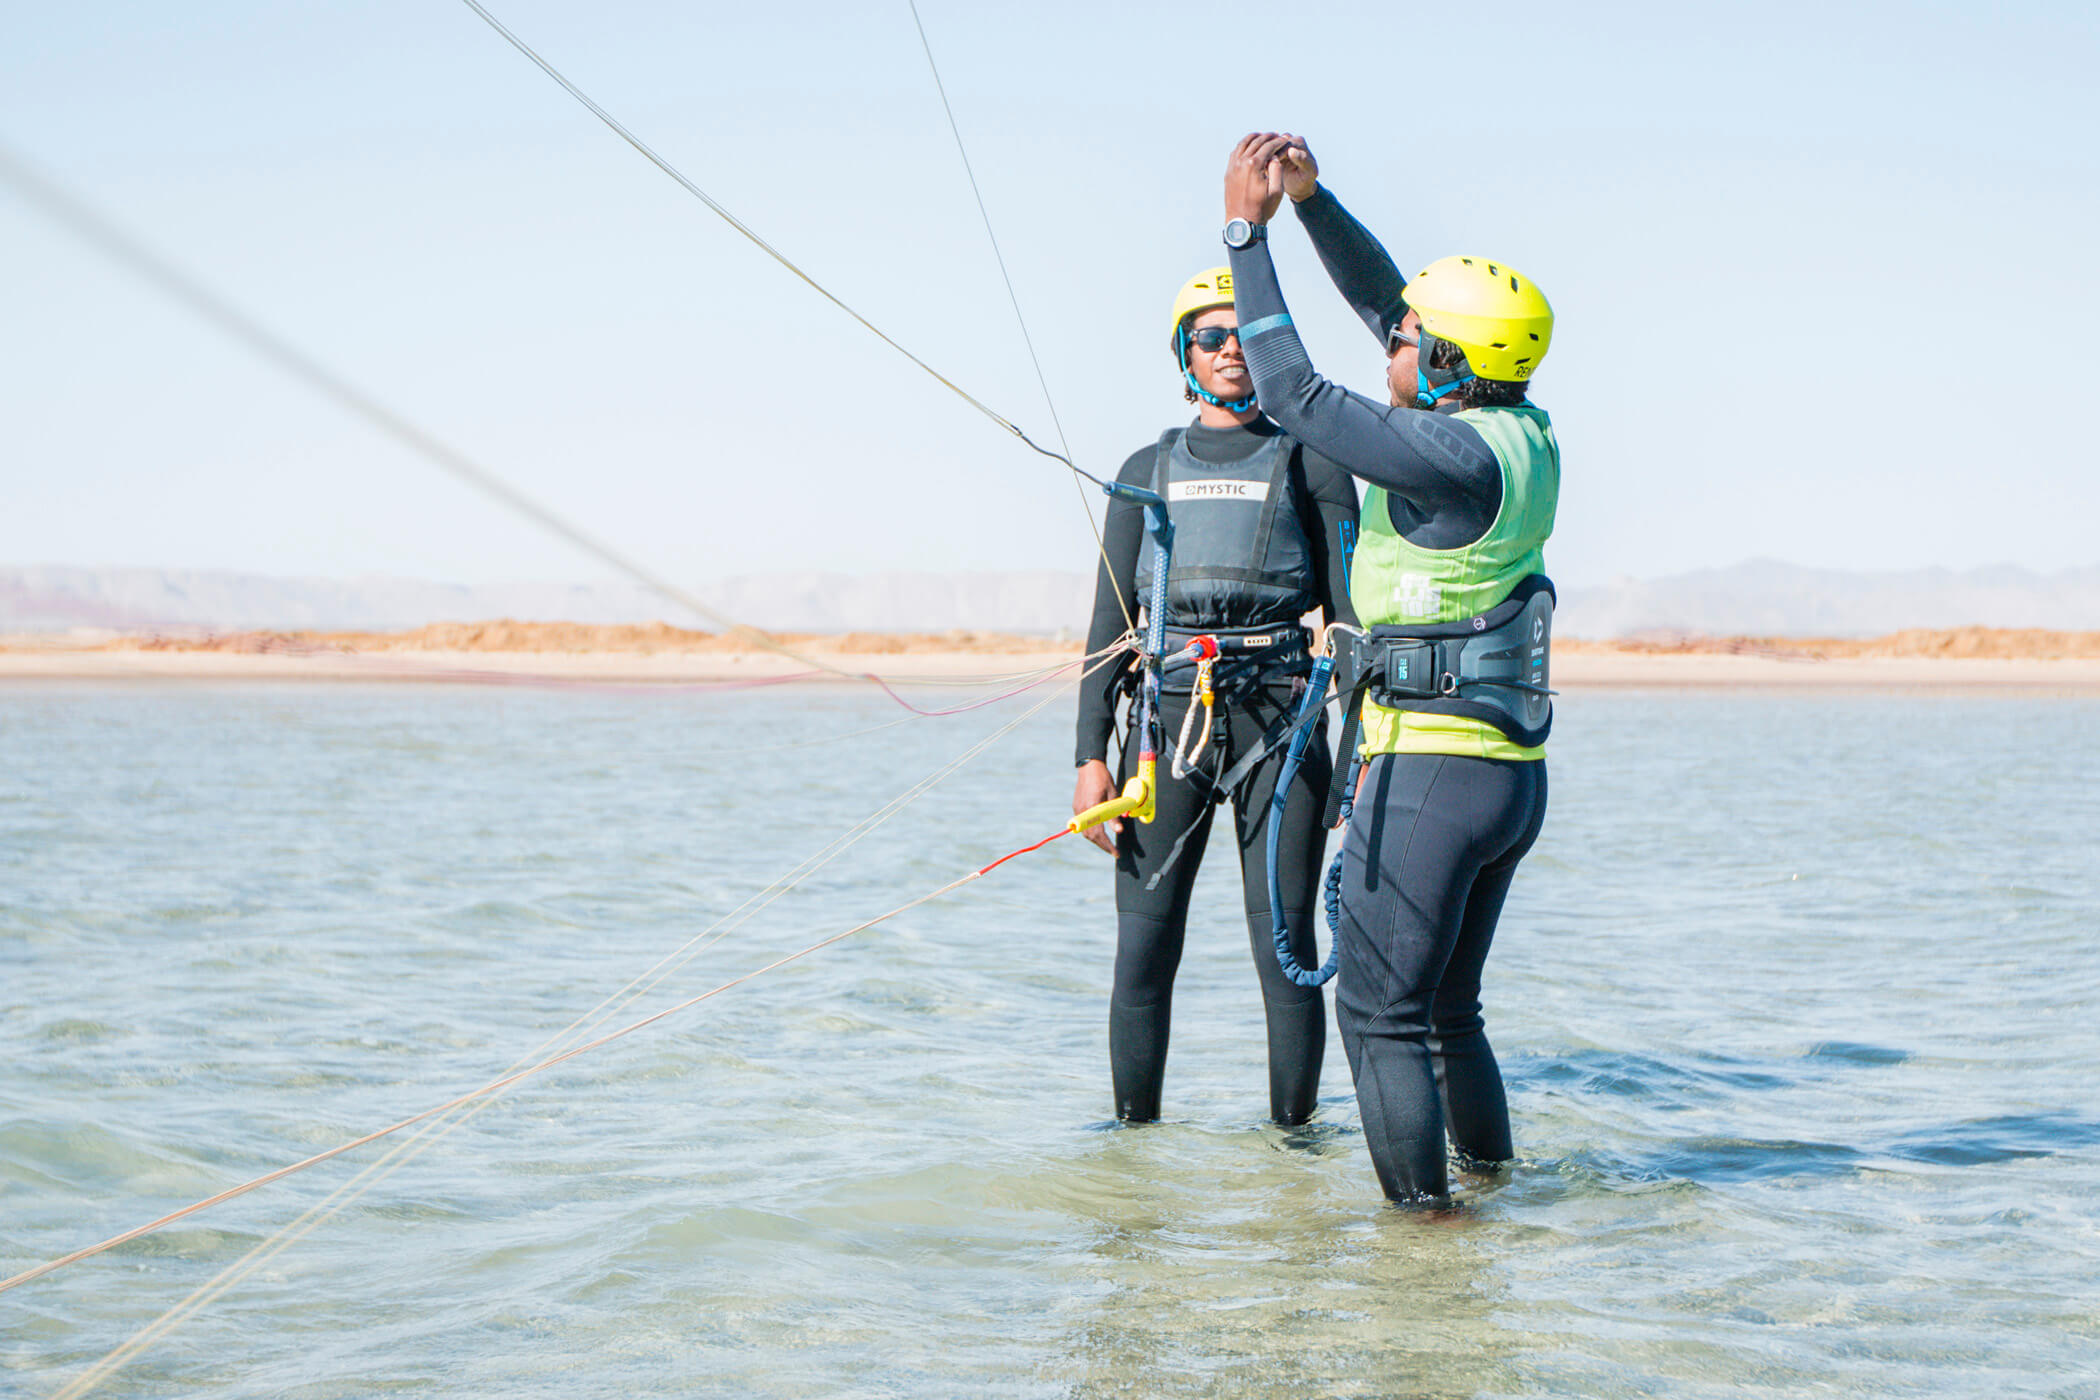 El Gouna Kitesurf teaching Makani Beach Club